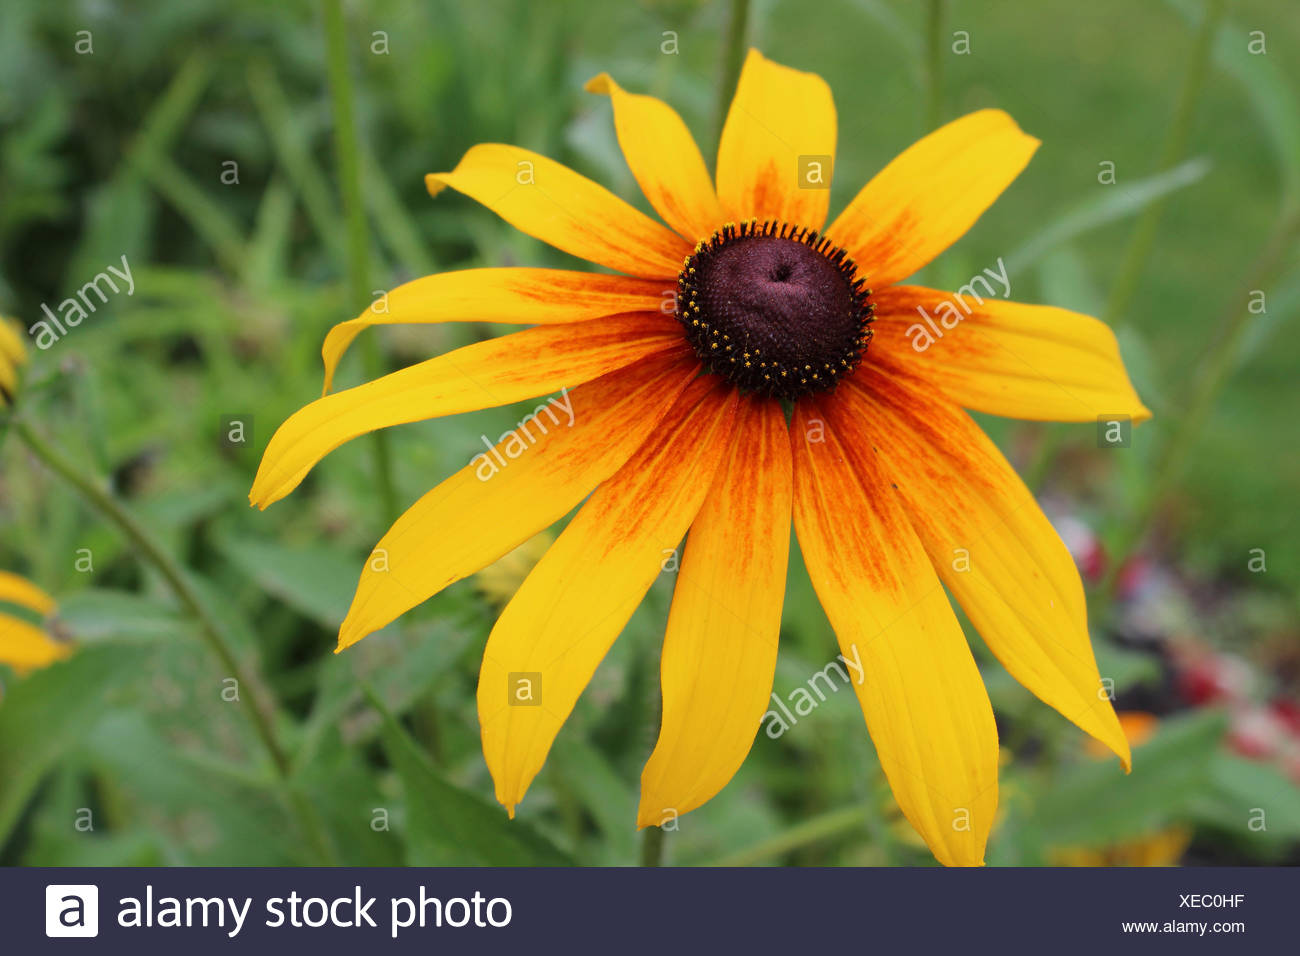 Pictures of daisy flower stock photos pictures of daisy flower yellow daisy flower stock image izmirmasajfo